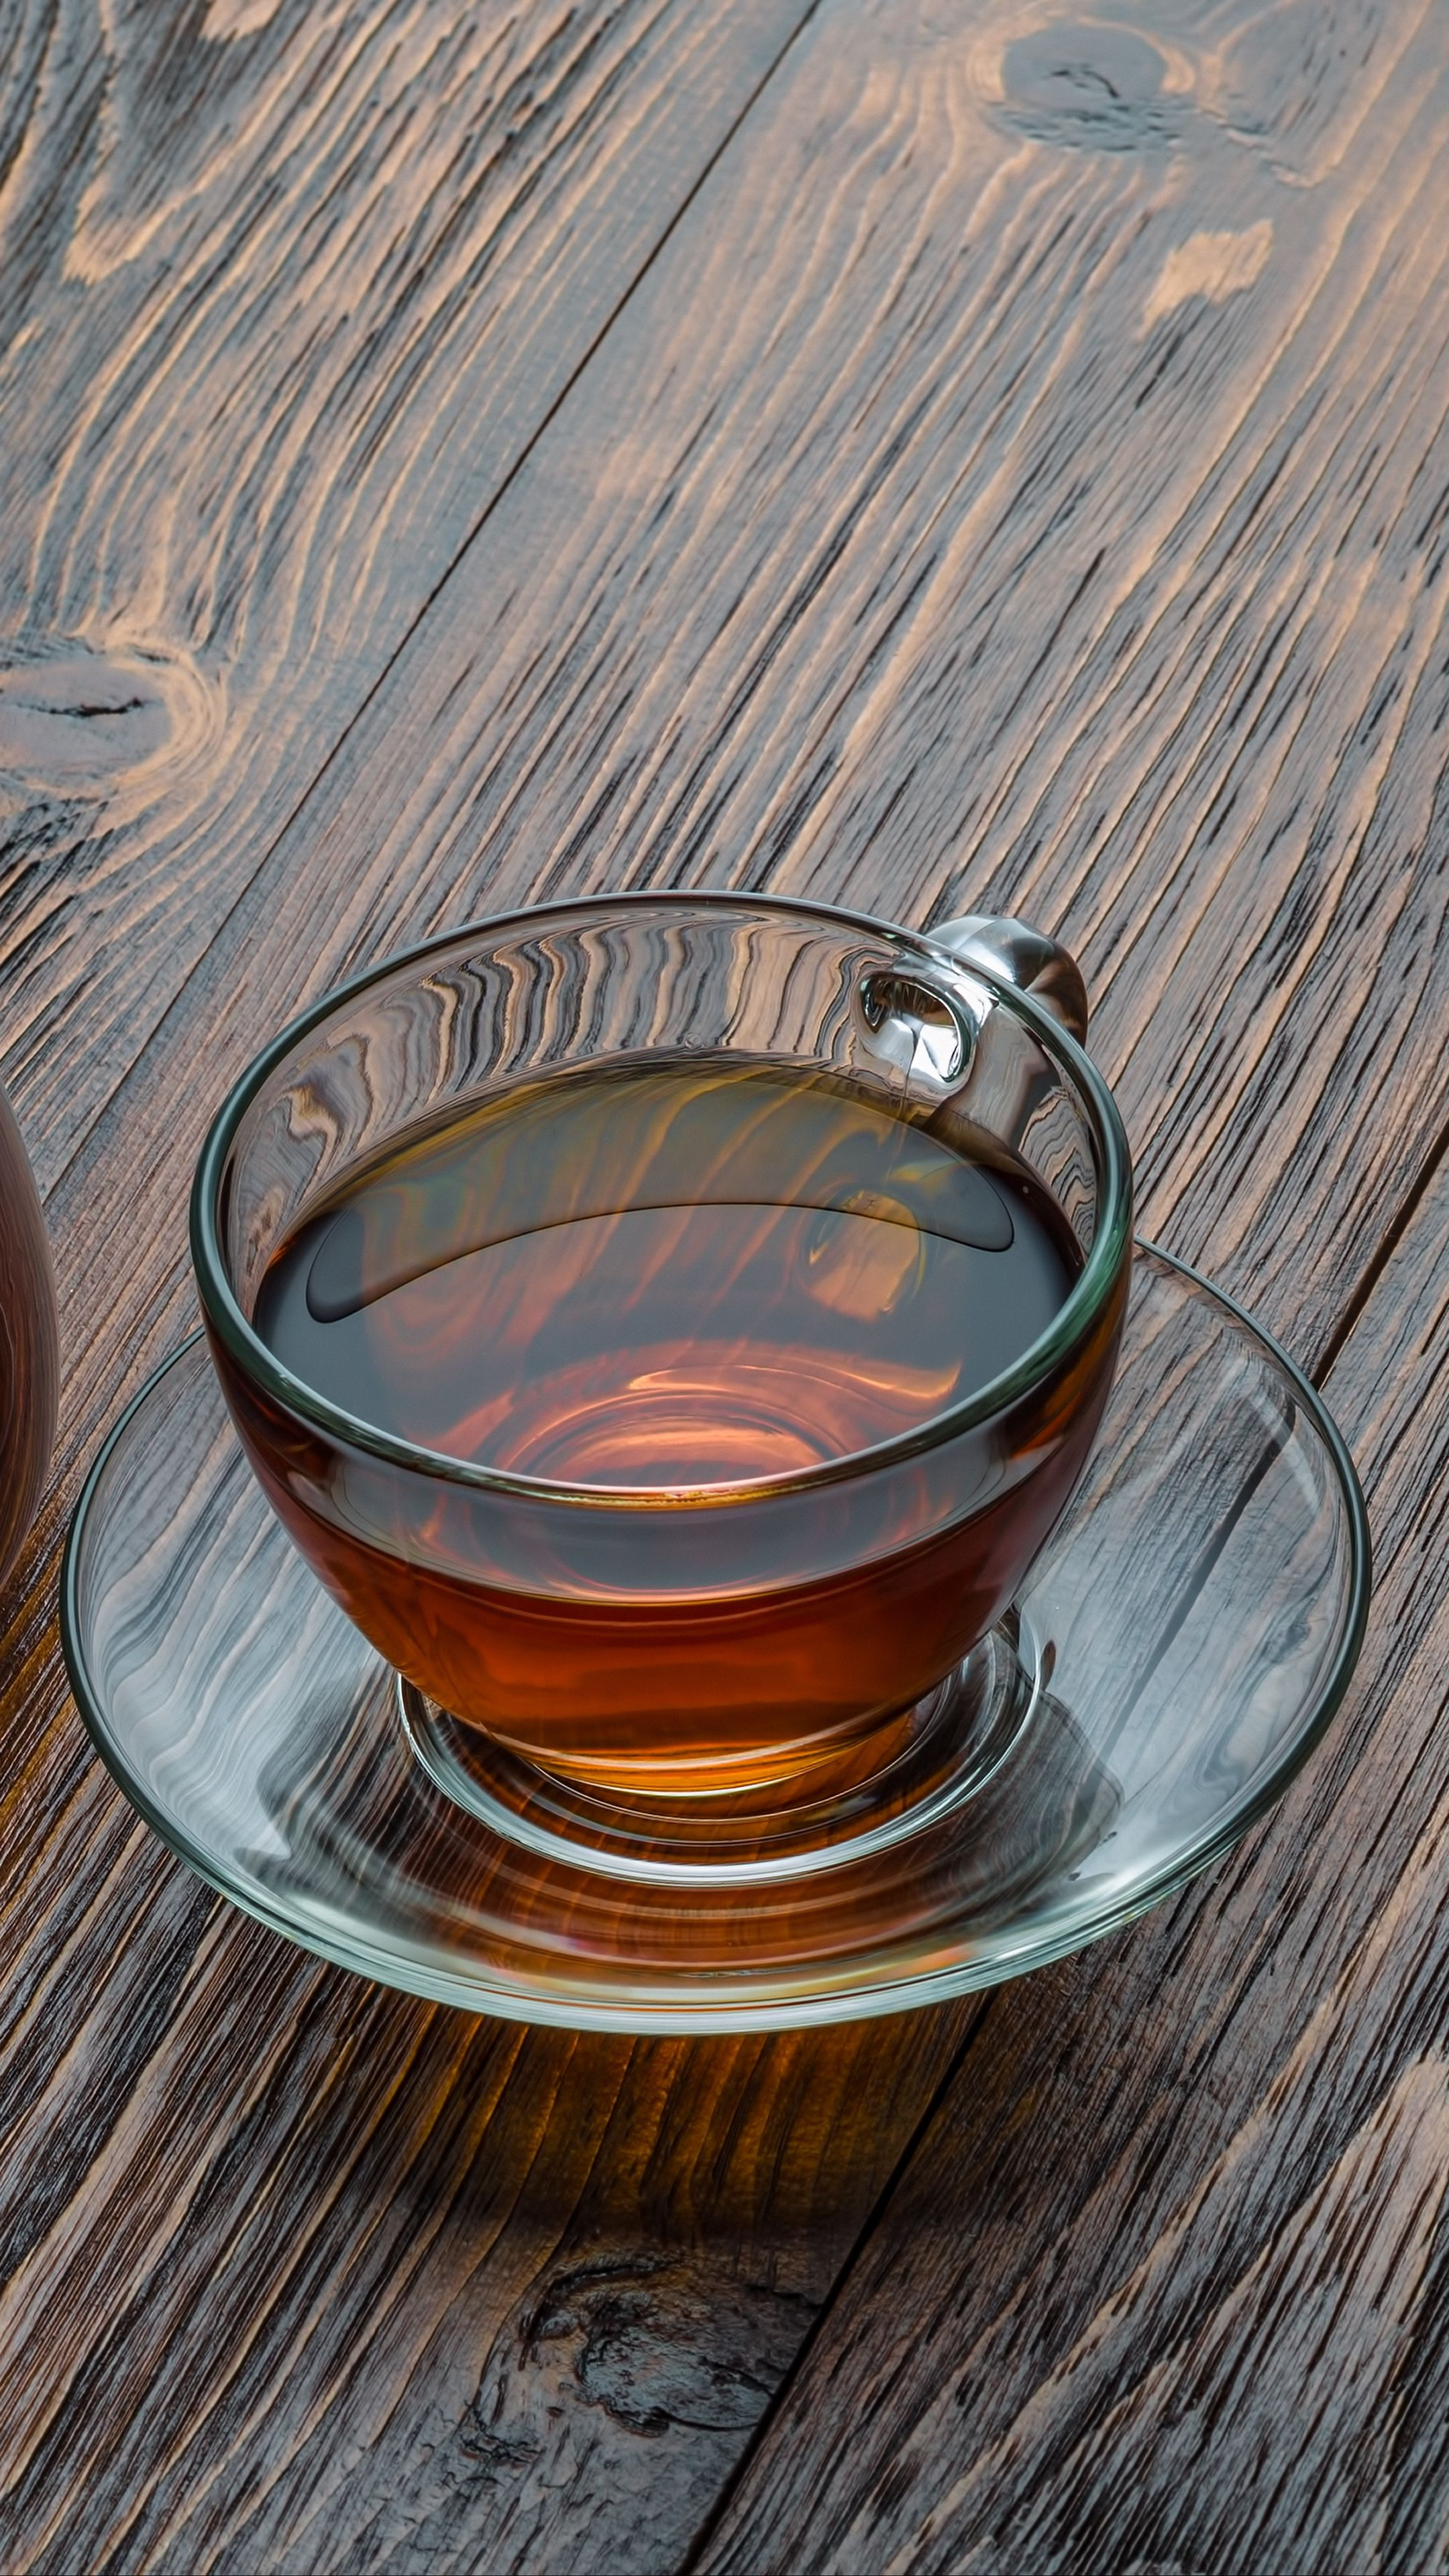 Food Drink Cup Tea Tea Party Android Wallpapers 4k Hd Tea Wallpaper Iphone Wallpaper Photos Android Wallpaper